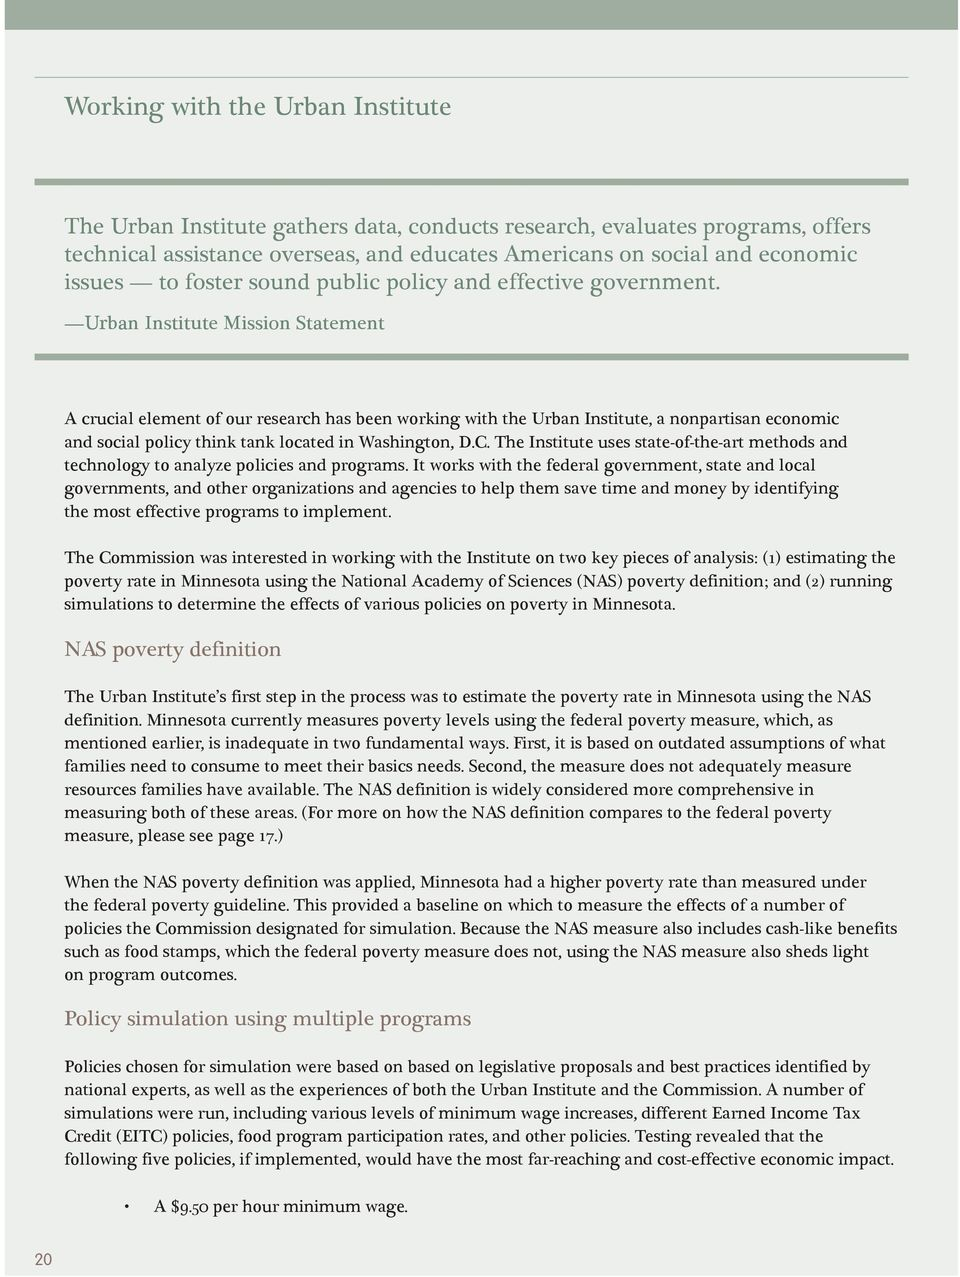 Urban Institute Mission Statement A crucial element of our research has been working with the Urban Institute, a nonpartisan economic and social policy think tank located in Washington, D.C.